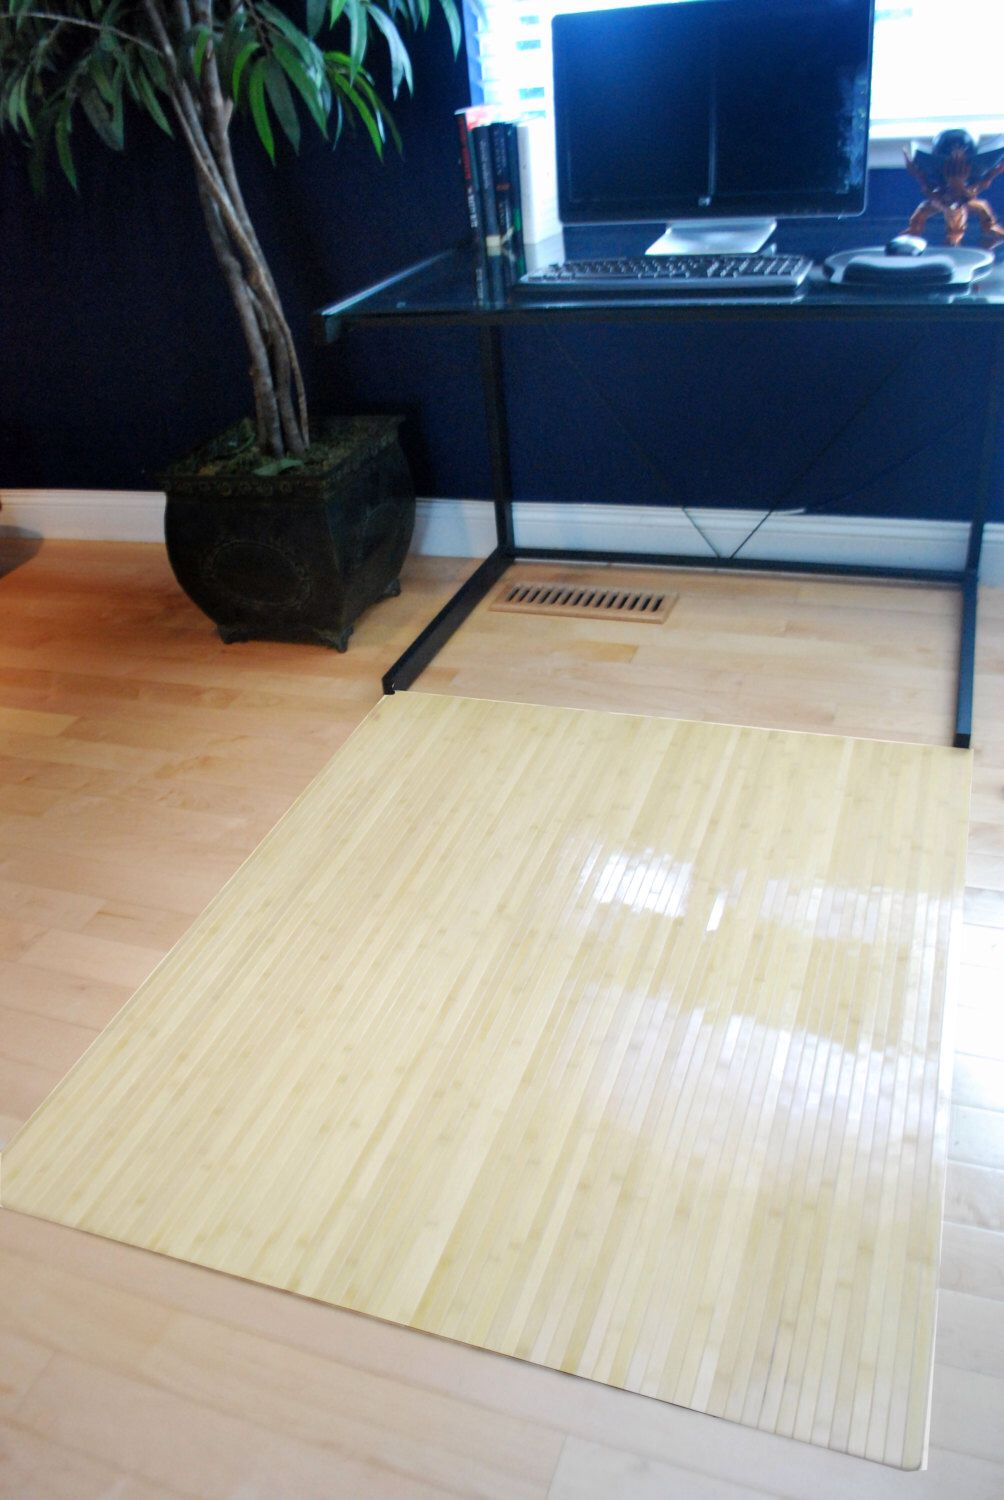 as cherry plastic computer rugs floors and protector the costco rolling finished house contemporary rubber chairs floor office rug bamboo mixed desk well under chair full of mats easy wooden hardwood swivel size for polycarbonate clear white laminate hard mat square delightful stylish